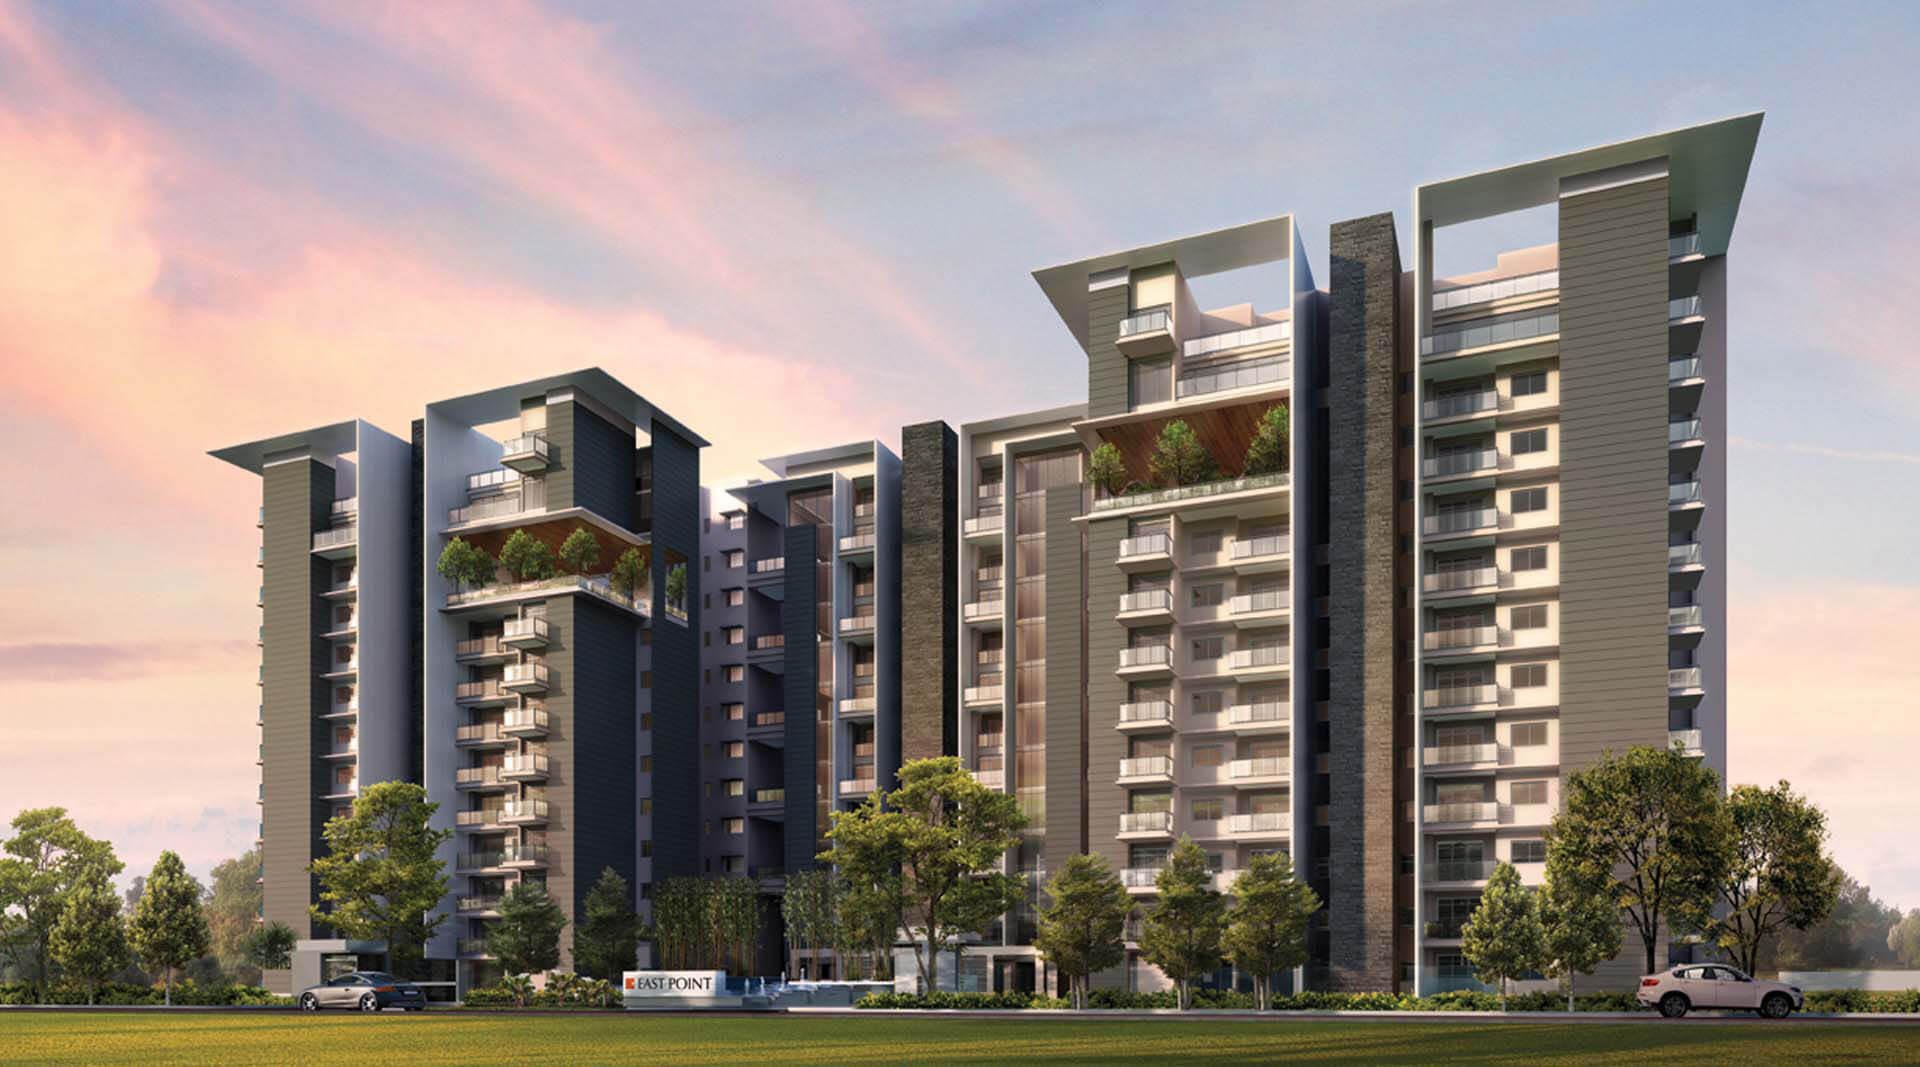 Assetz East Point Outer Ring Road Bangalore 3608